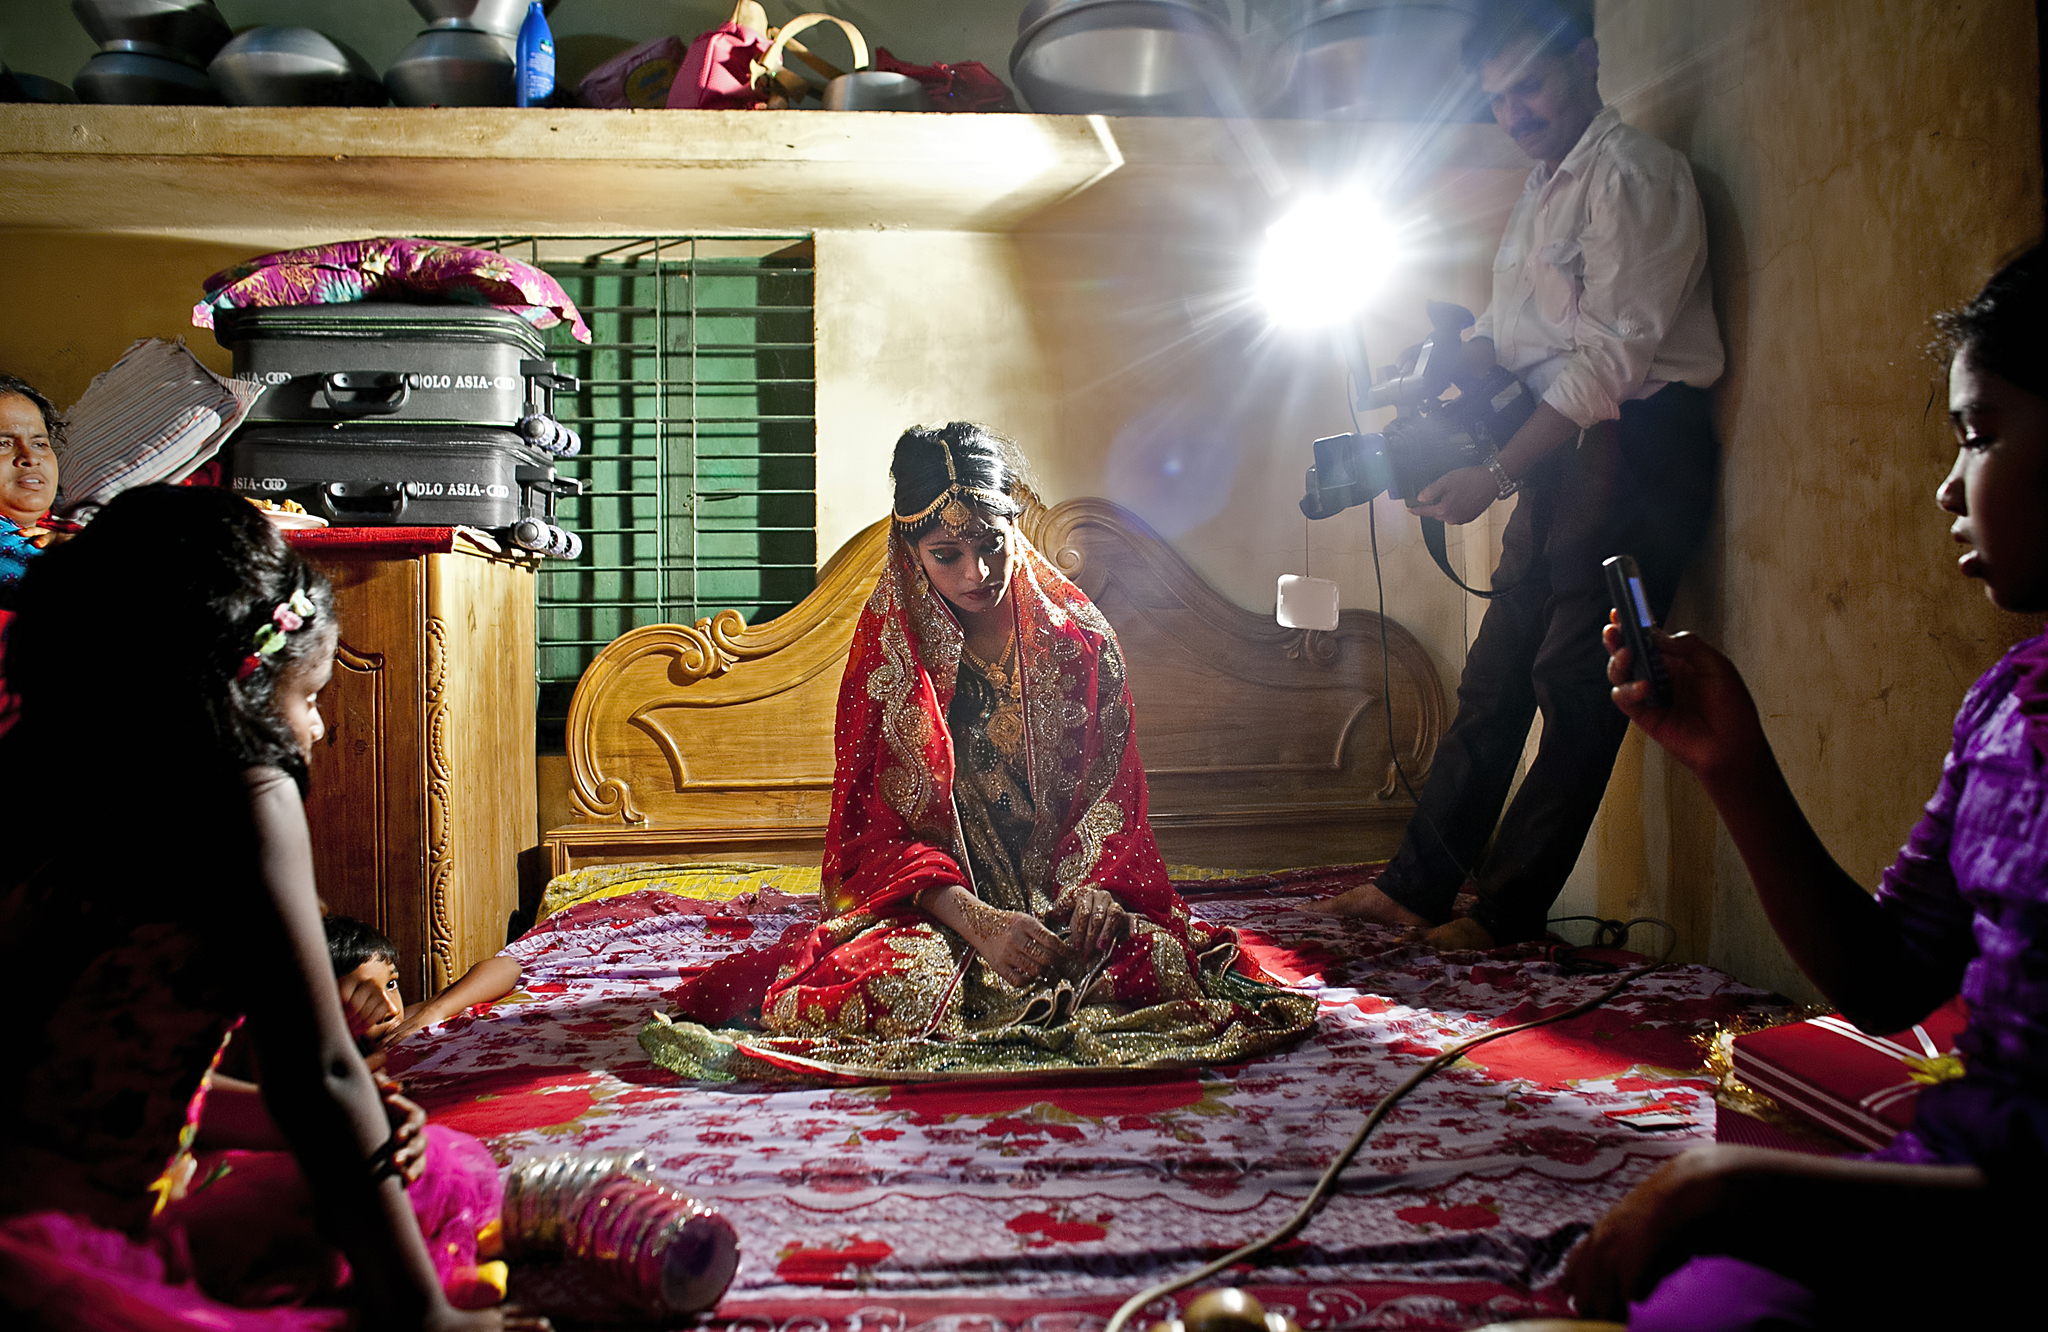 "Child Marriage In Bangladesh...MANIKGANJ, BANGLADESH - AUGUST 20: 15 year old Nasoin Akhter poses for a video on the day of her wedding to a 32 year old man, August 20, 2015 in Manikganj, Bangladesh.  In June of this year, Human Rights Watch released a damning report about child marriage in Bangladesh. The country has one of the highest rates of child marriage in the world, with 29% of girls marrying before the age of 15, and 65% of girls marrying before they turn 18. The detrimental effects of early marriage on a girl cannot be overstated. Most young brides drop out of school. Pregnant girls from 15-20 are twice as likely to die in childbirth than those 20 or older, while girls under 15 are at five times the risk. Research cites spousal age difference as a significant risk factor for violence and sexual abuse. Child marriage is attributed to both cultural tradition and poverty. Parents believe that it ""protects"" girls from sexual assault and harassment. Larger  dowries are not required for young girls, and economically, women's earnings are insignificant as compared to men's. (Photo by Allison Joyce/Getty Images)"